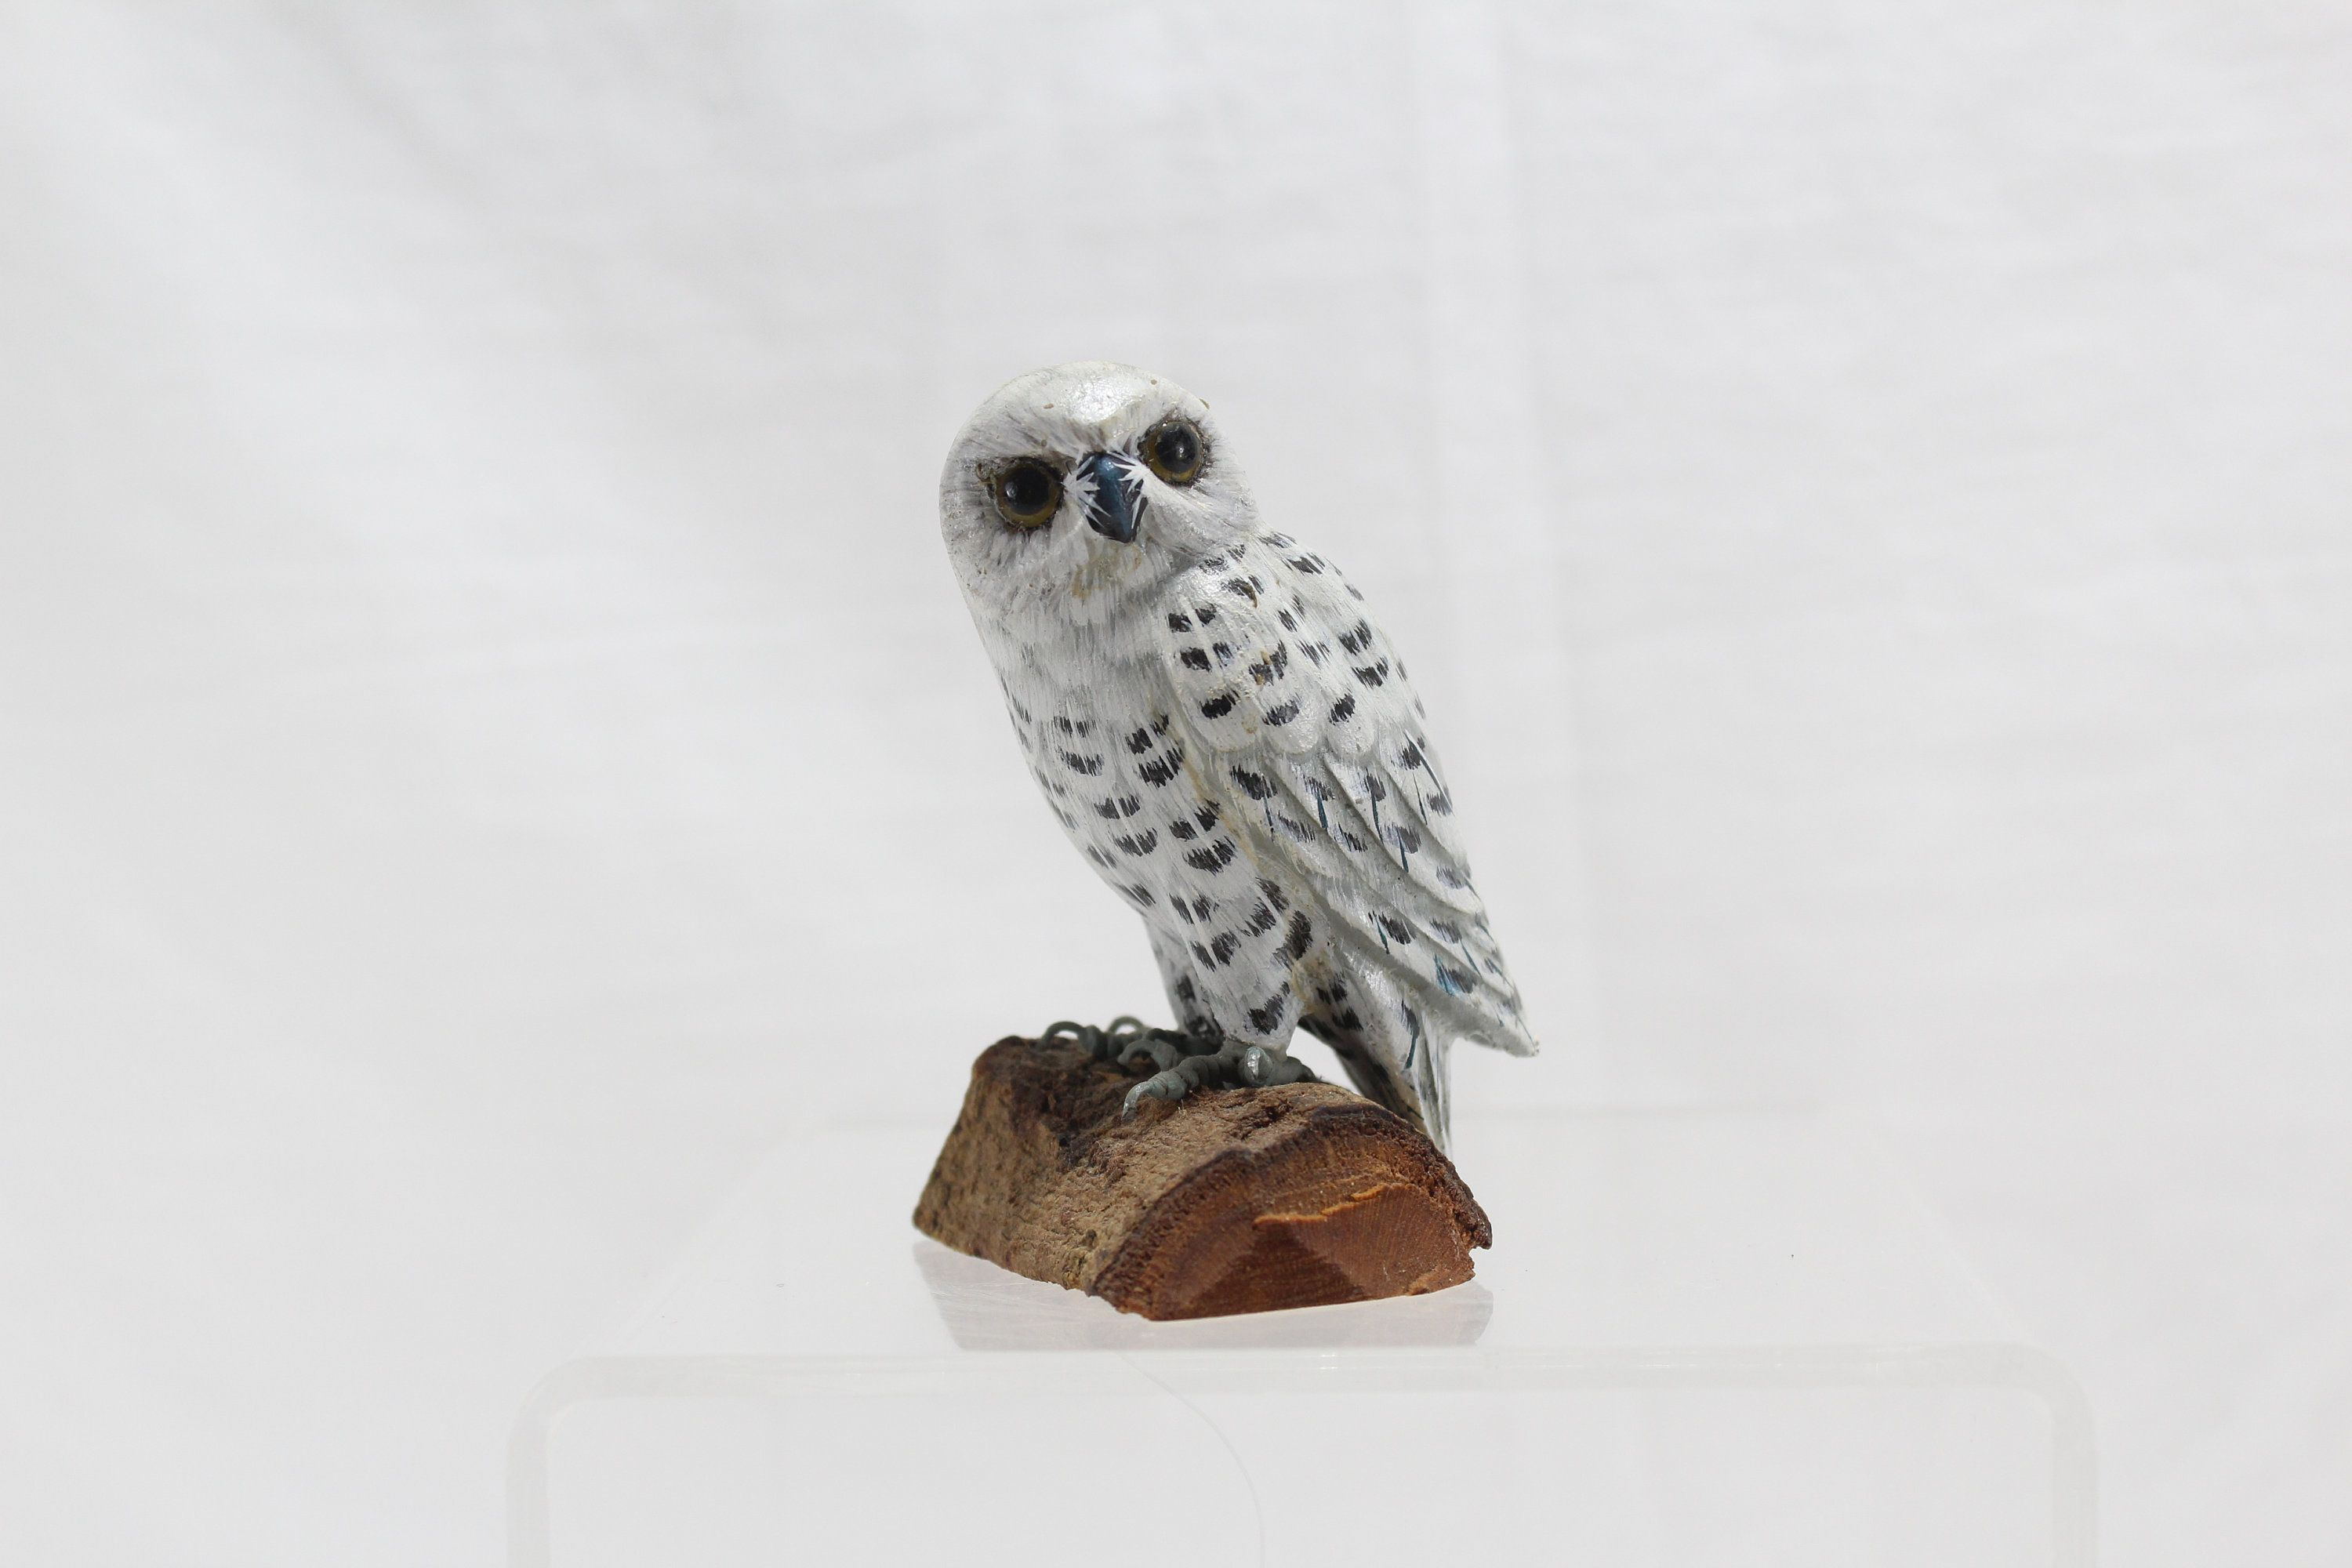 Vintage Pewter Owl Figurine Cute Animal Miniature Bird Handmade Art Crafted